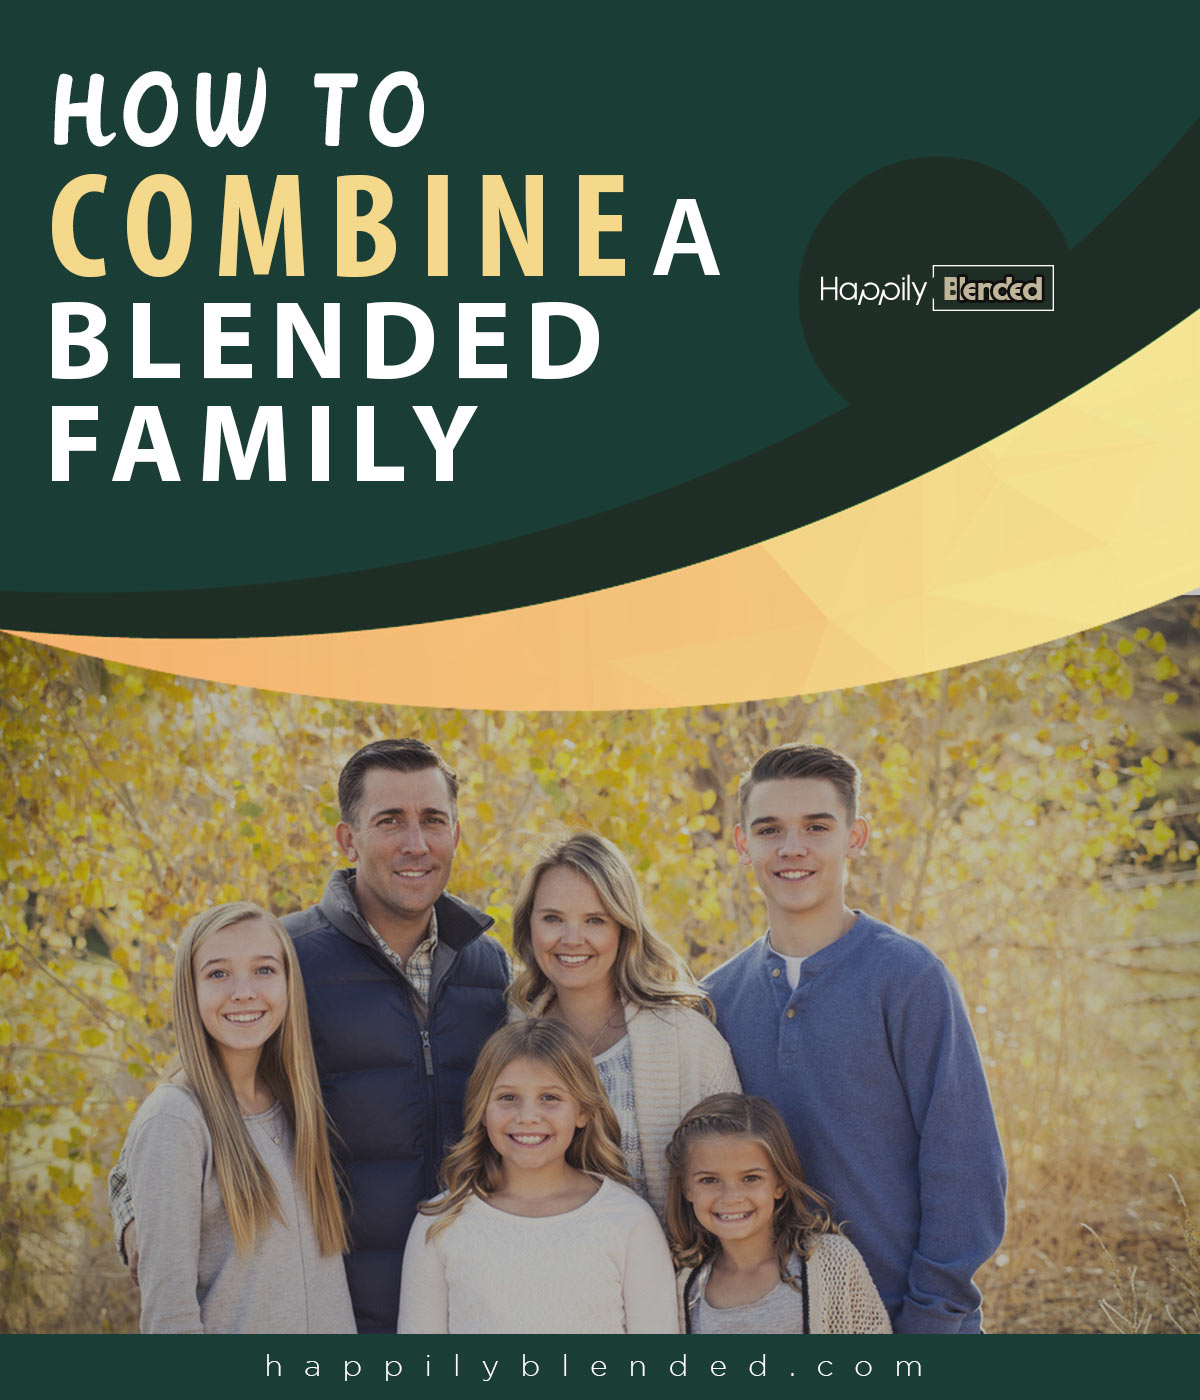 Combine-a-Blended-Family